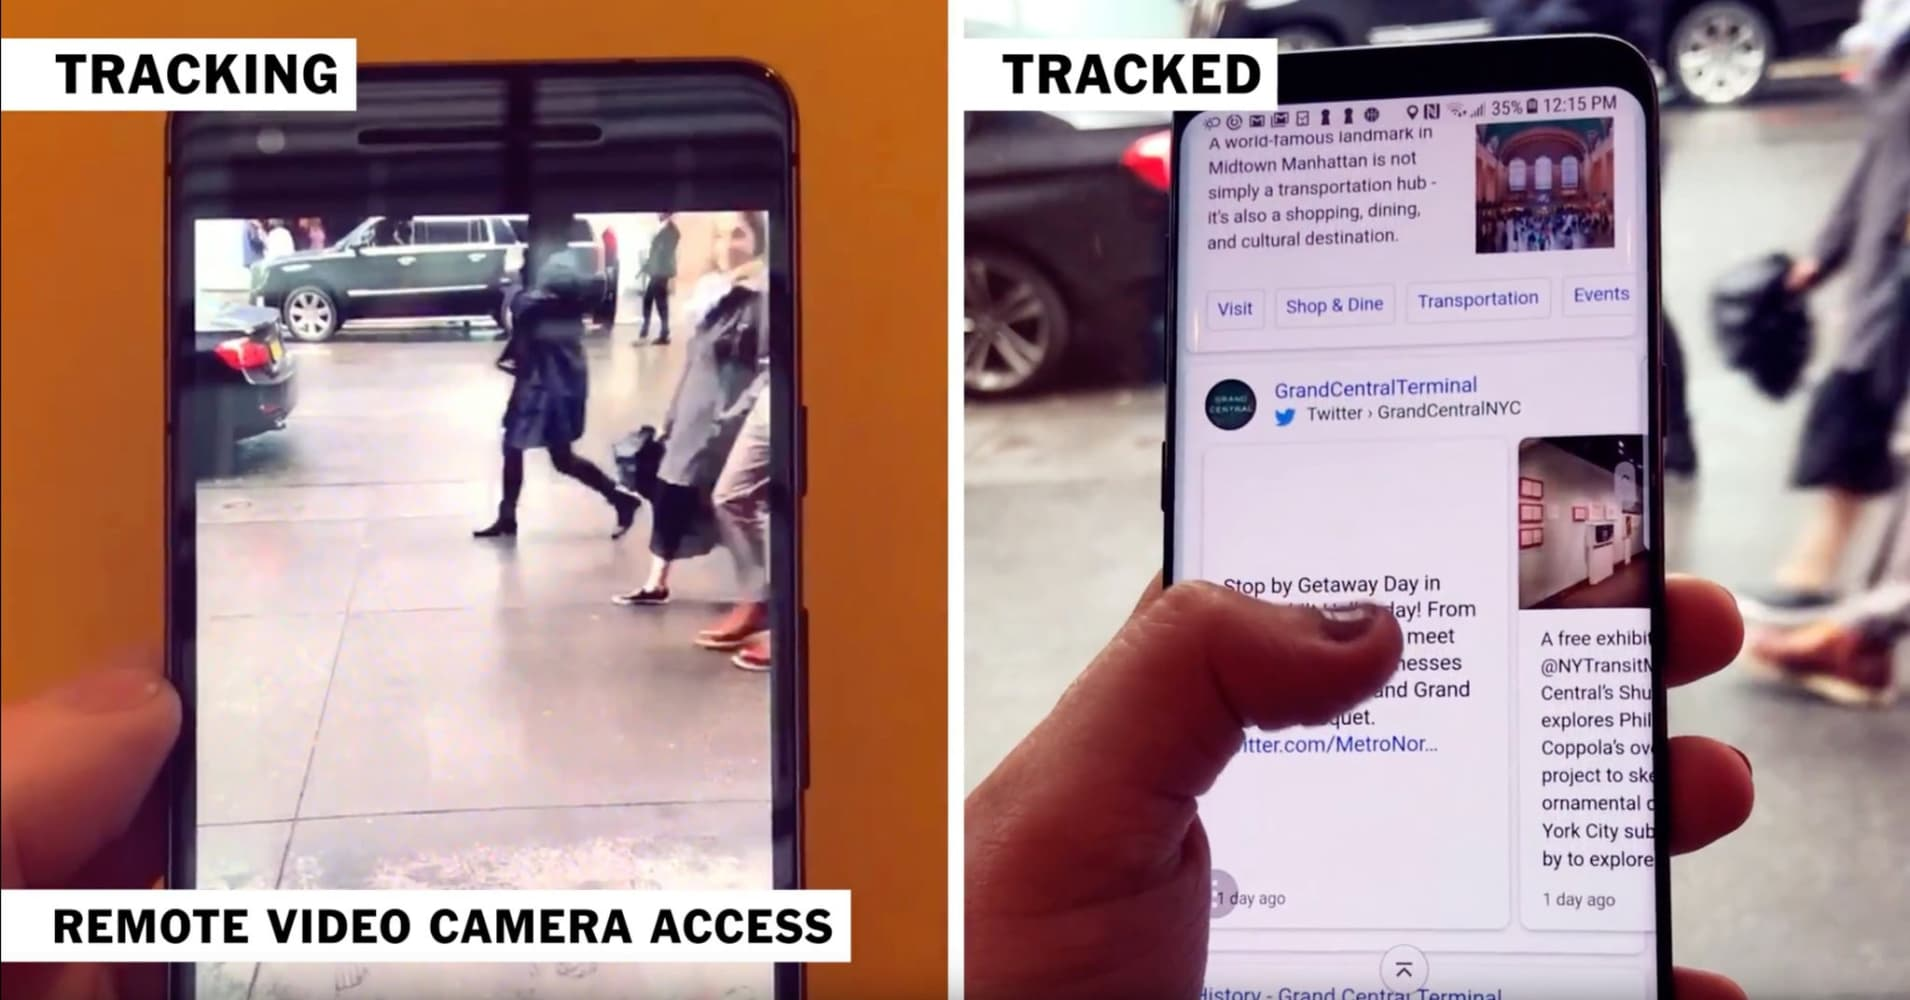 How hundreds of apps can empower stalkers to track their victims